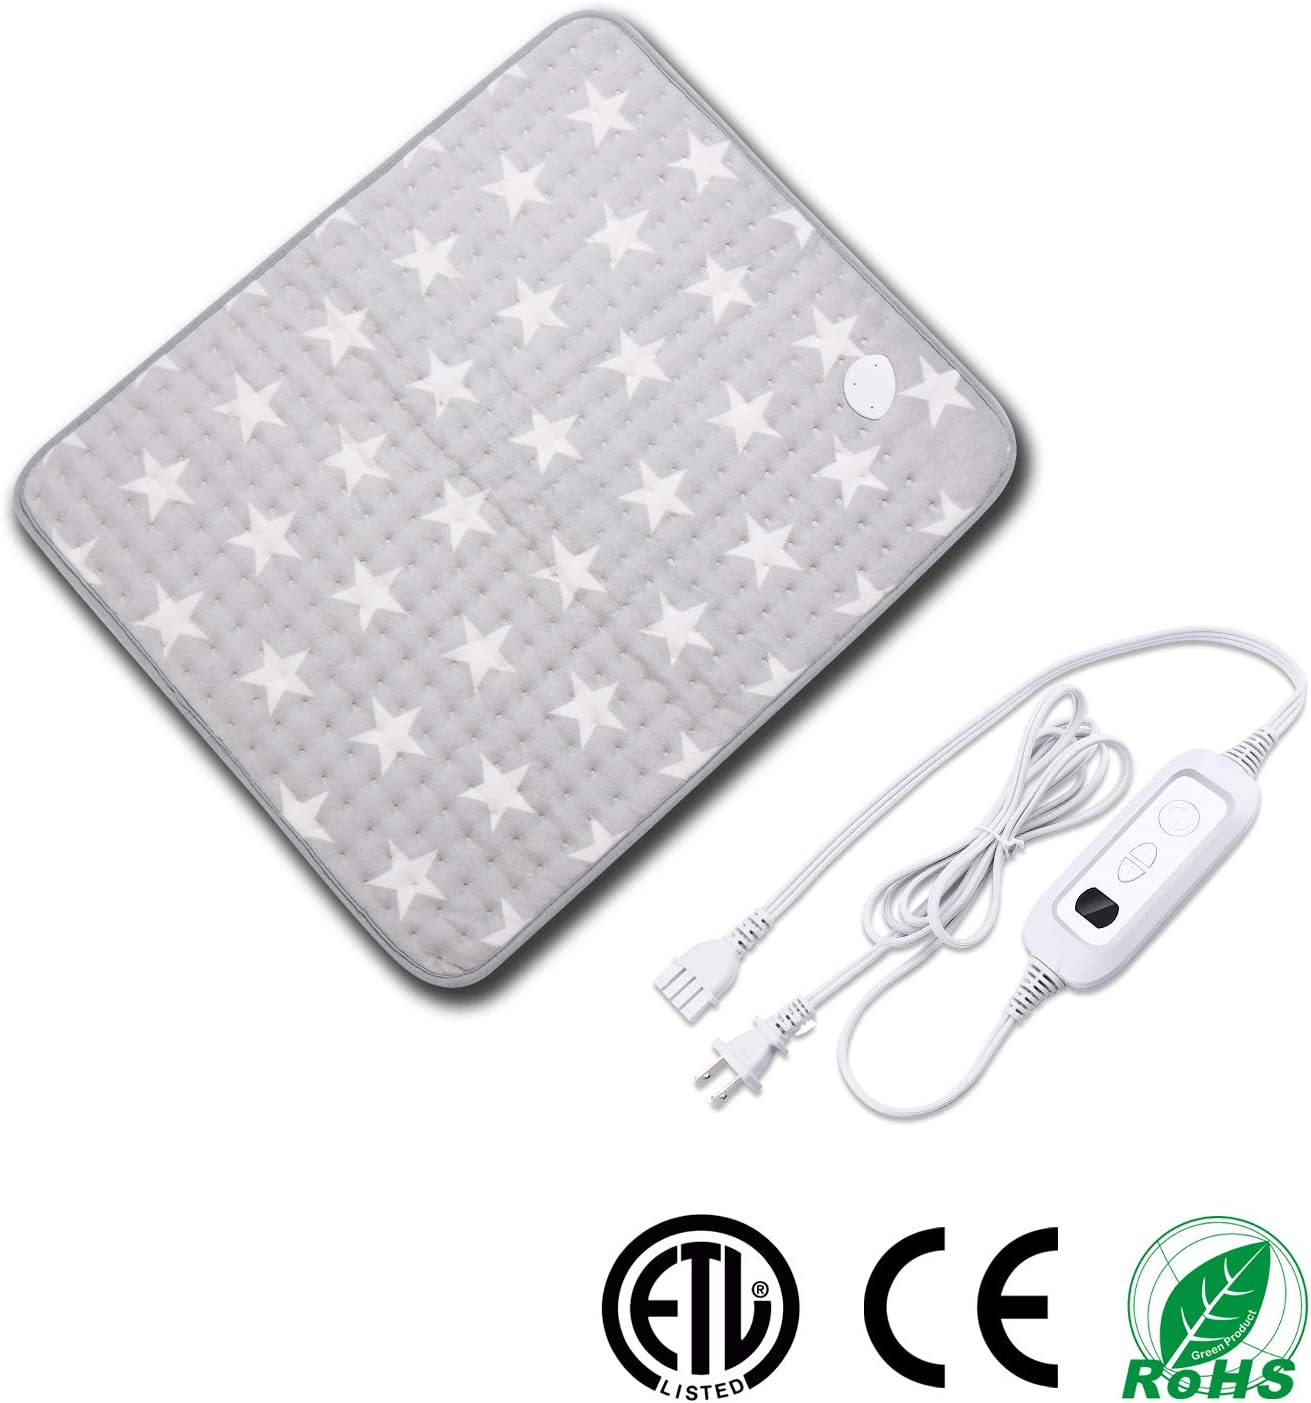 Heating Pad for Muscle Pain Relief with Strap, Electric Heat Therapy Heating Pad with Auto Shut-Off, Fast Heat-up with 6 Heating Levels,Super Soft Material (23.6''x19.7'', Gray-Star Pattern)